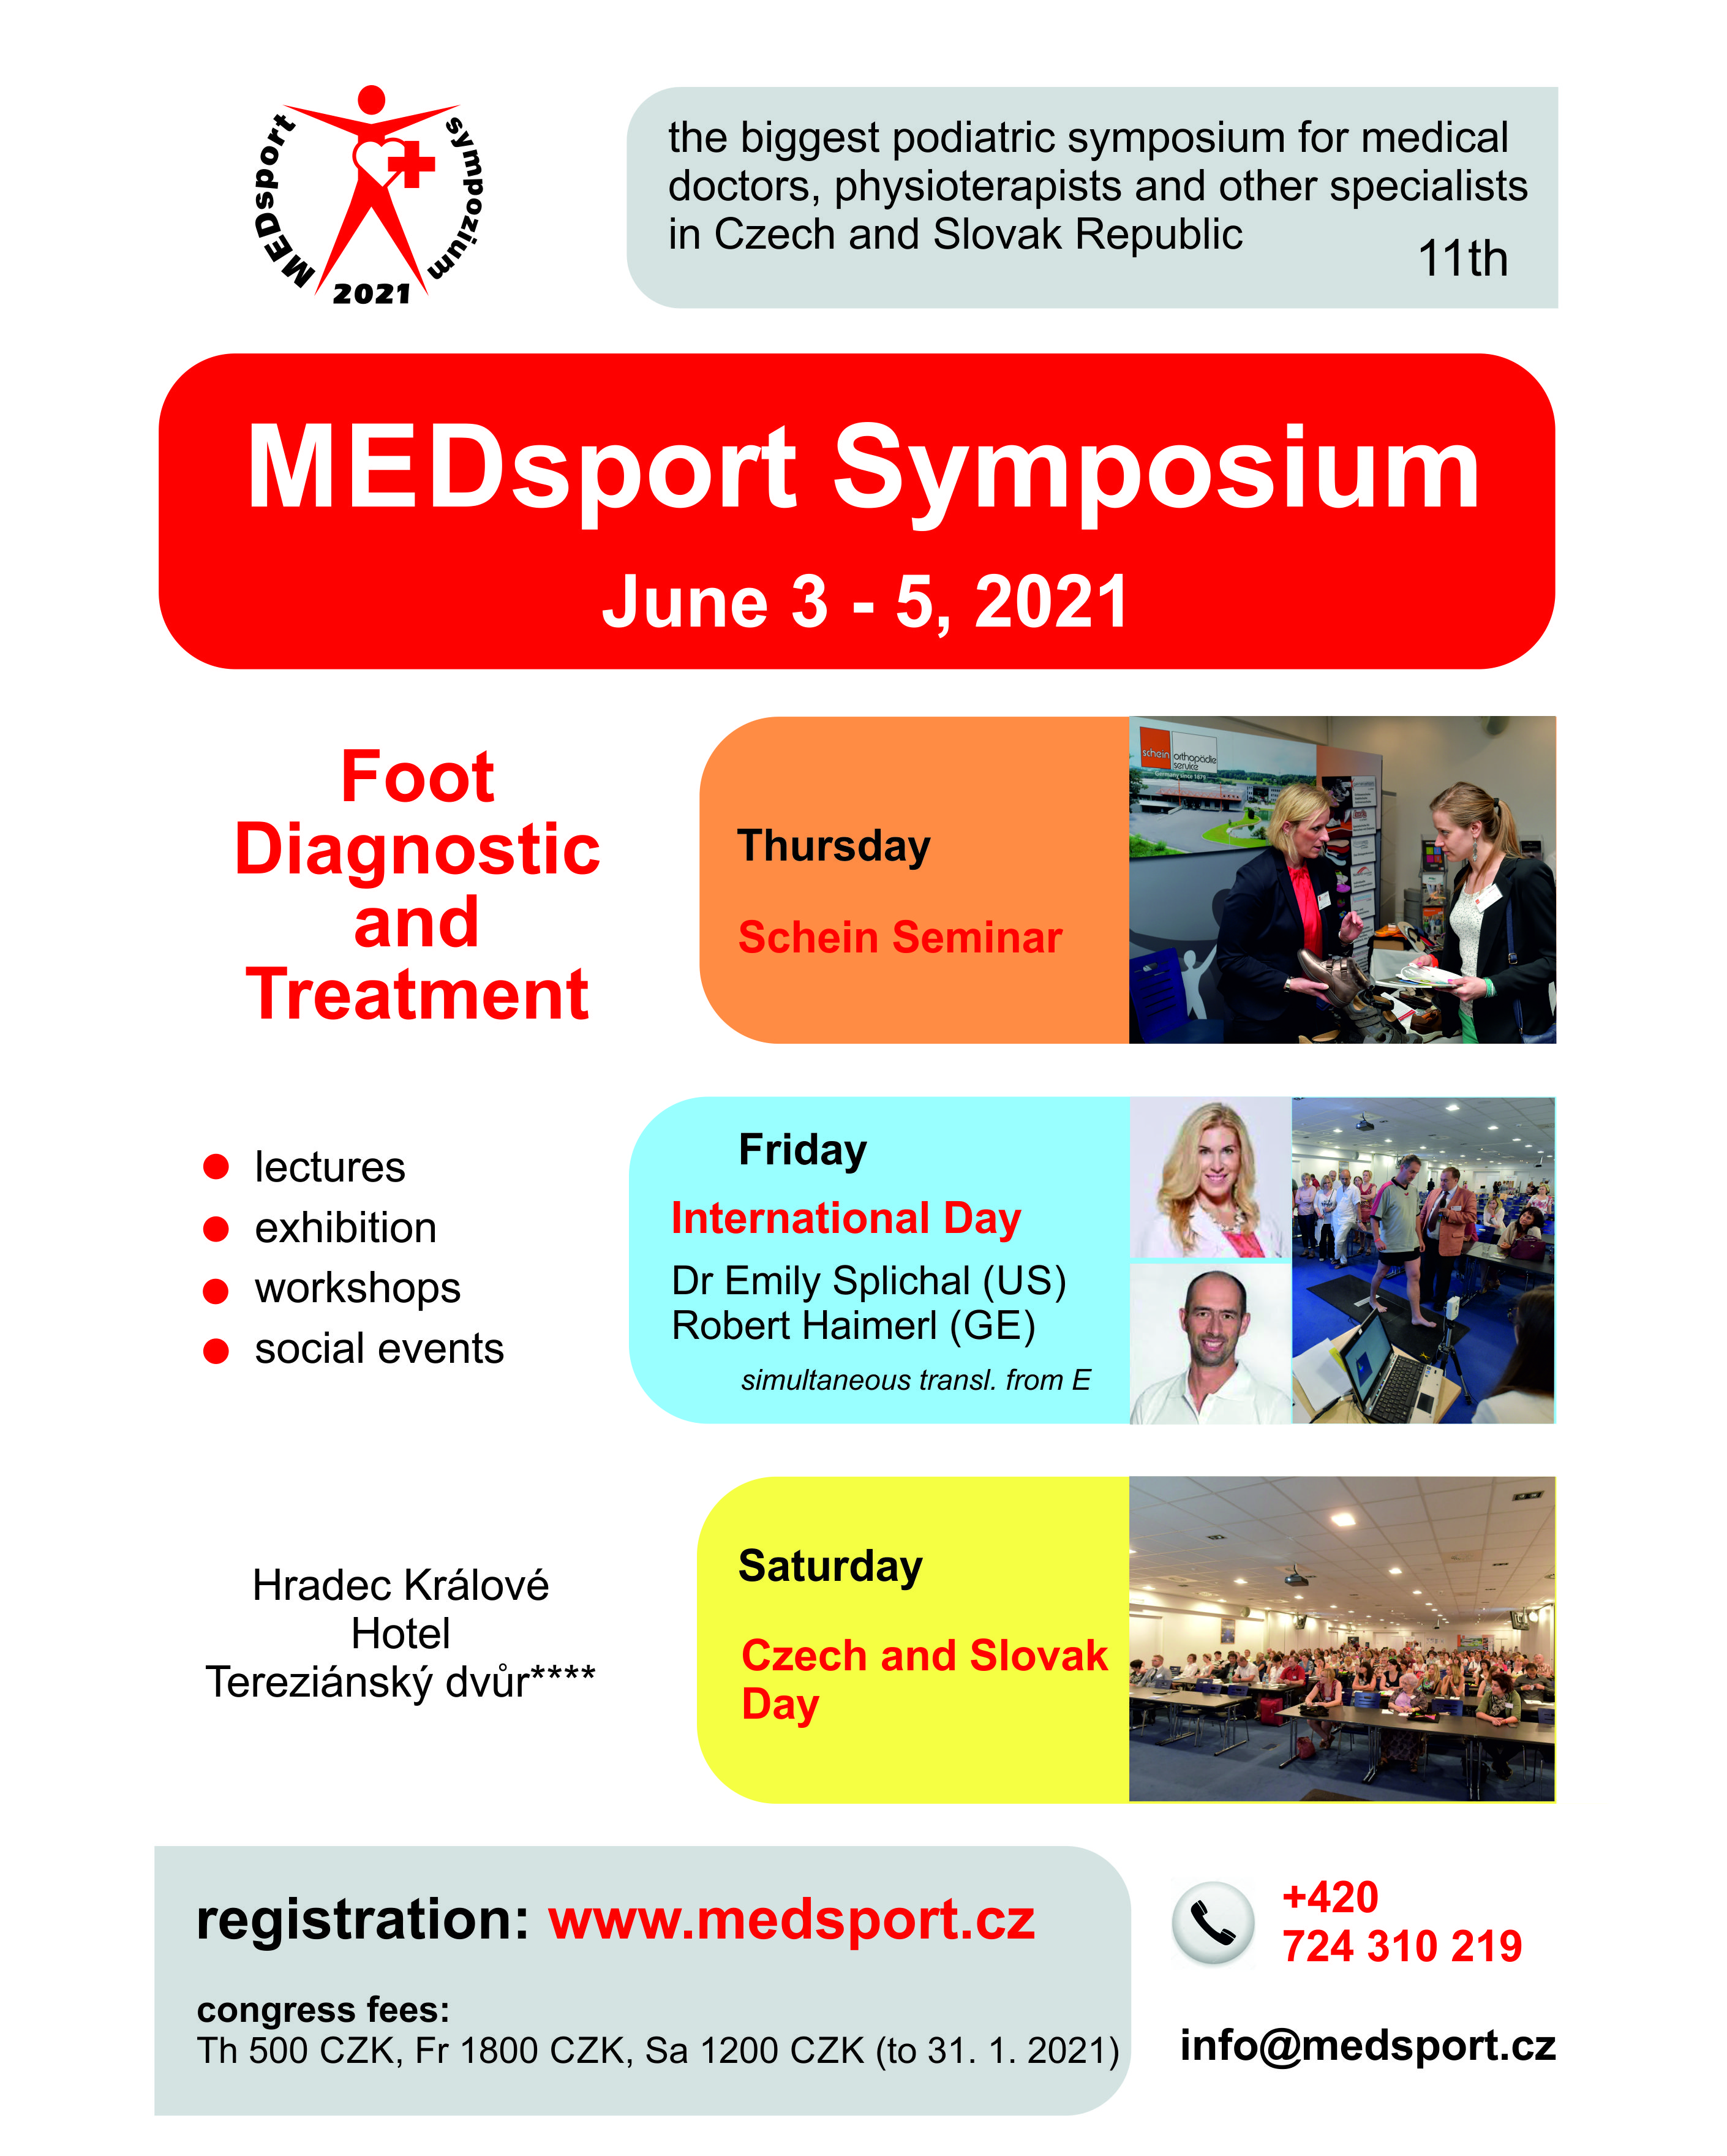 Invitation to MEDsport Symposium 2021